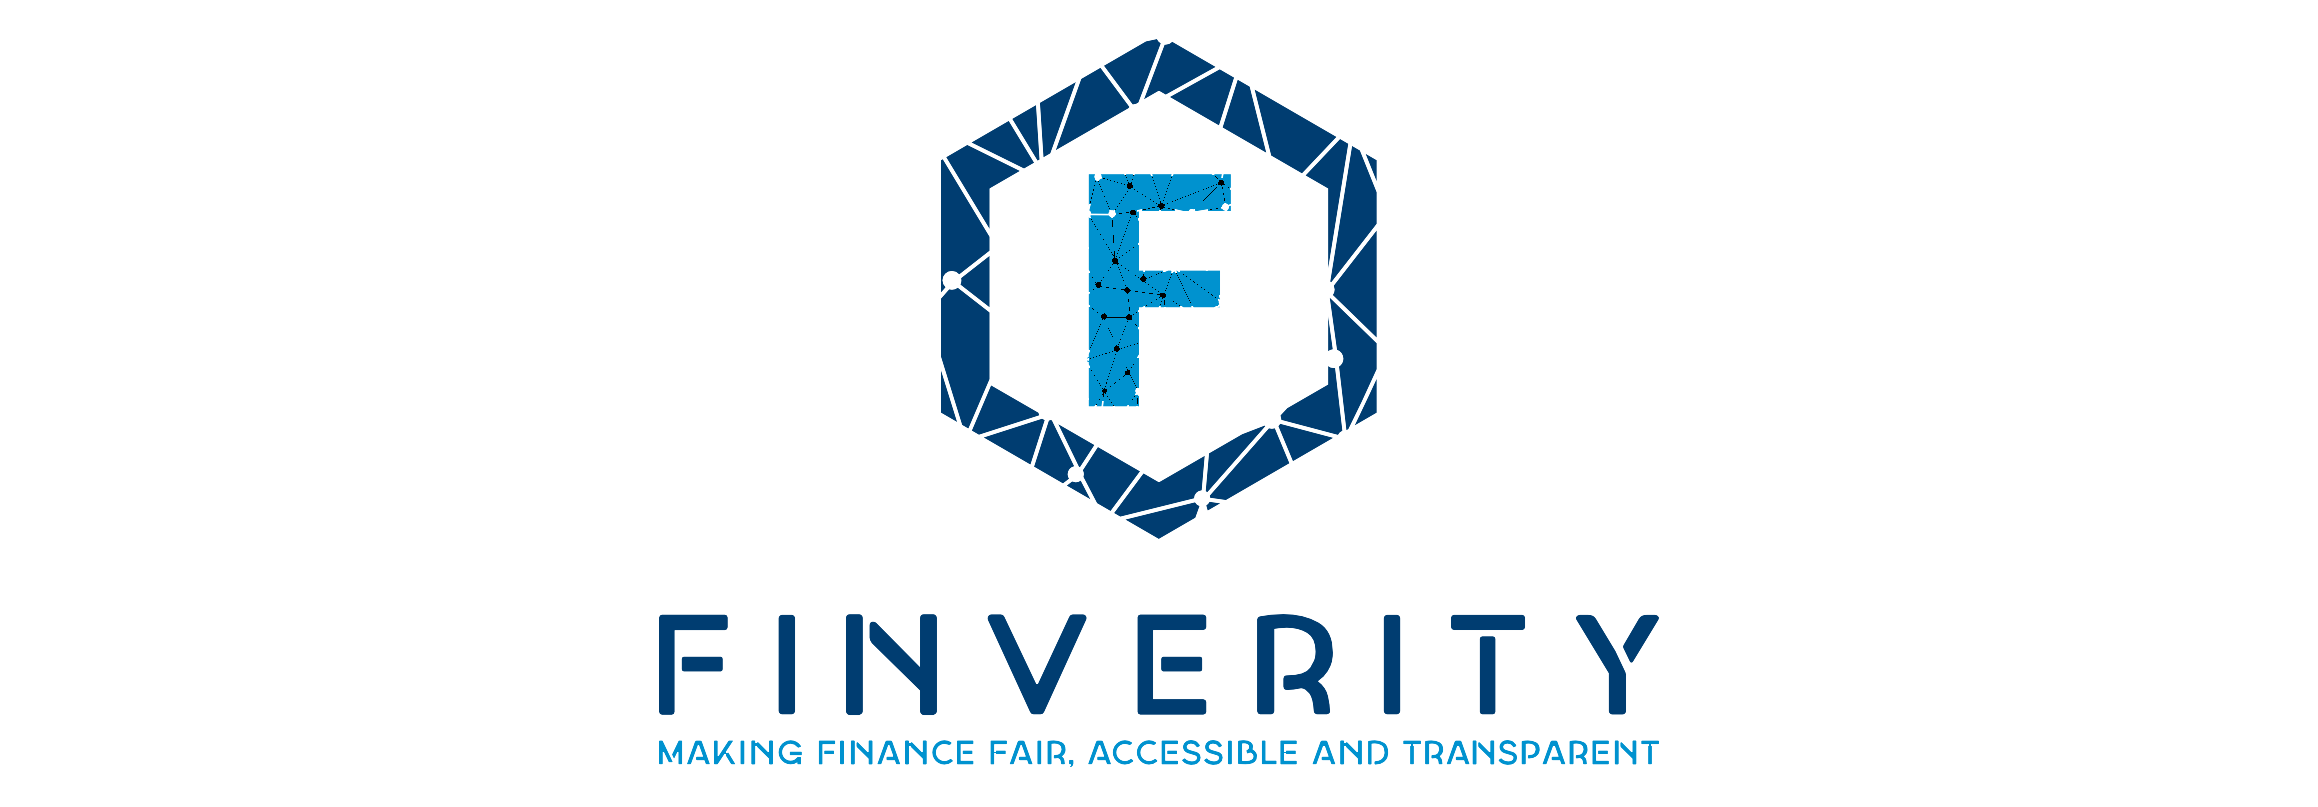 Finverity Teams Up with Abu Dhabi Global Market in Boost to Supply Chain Finance